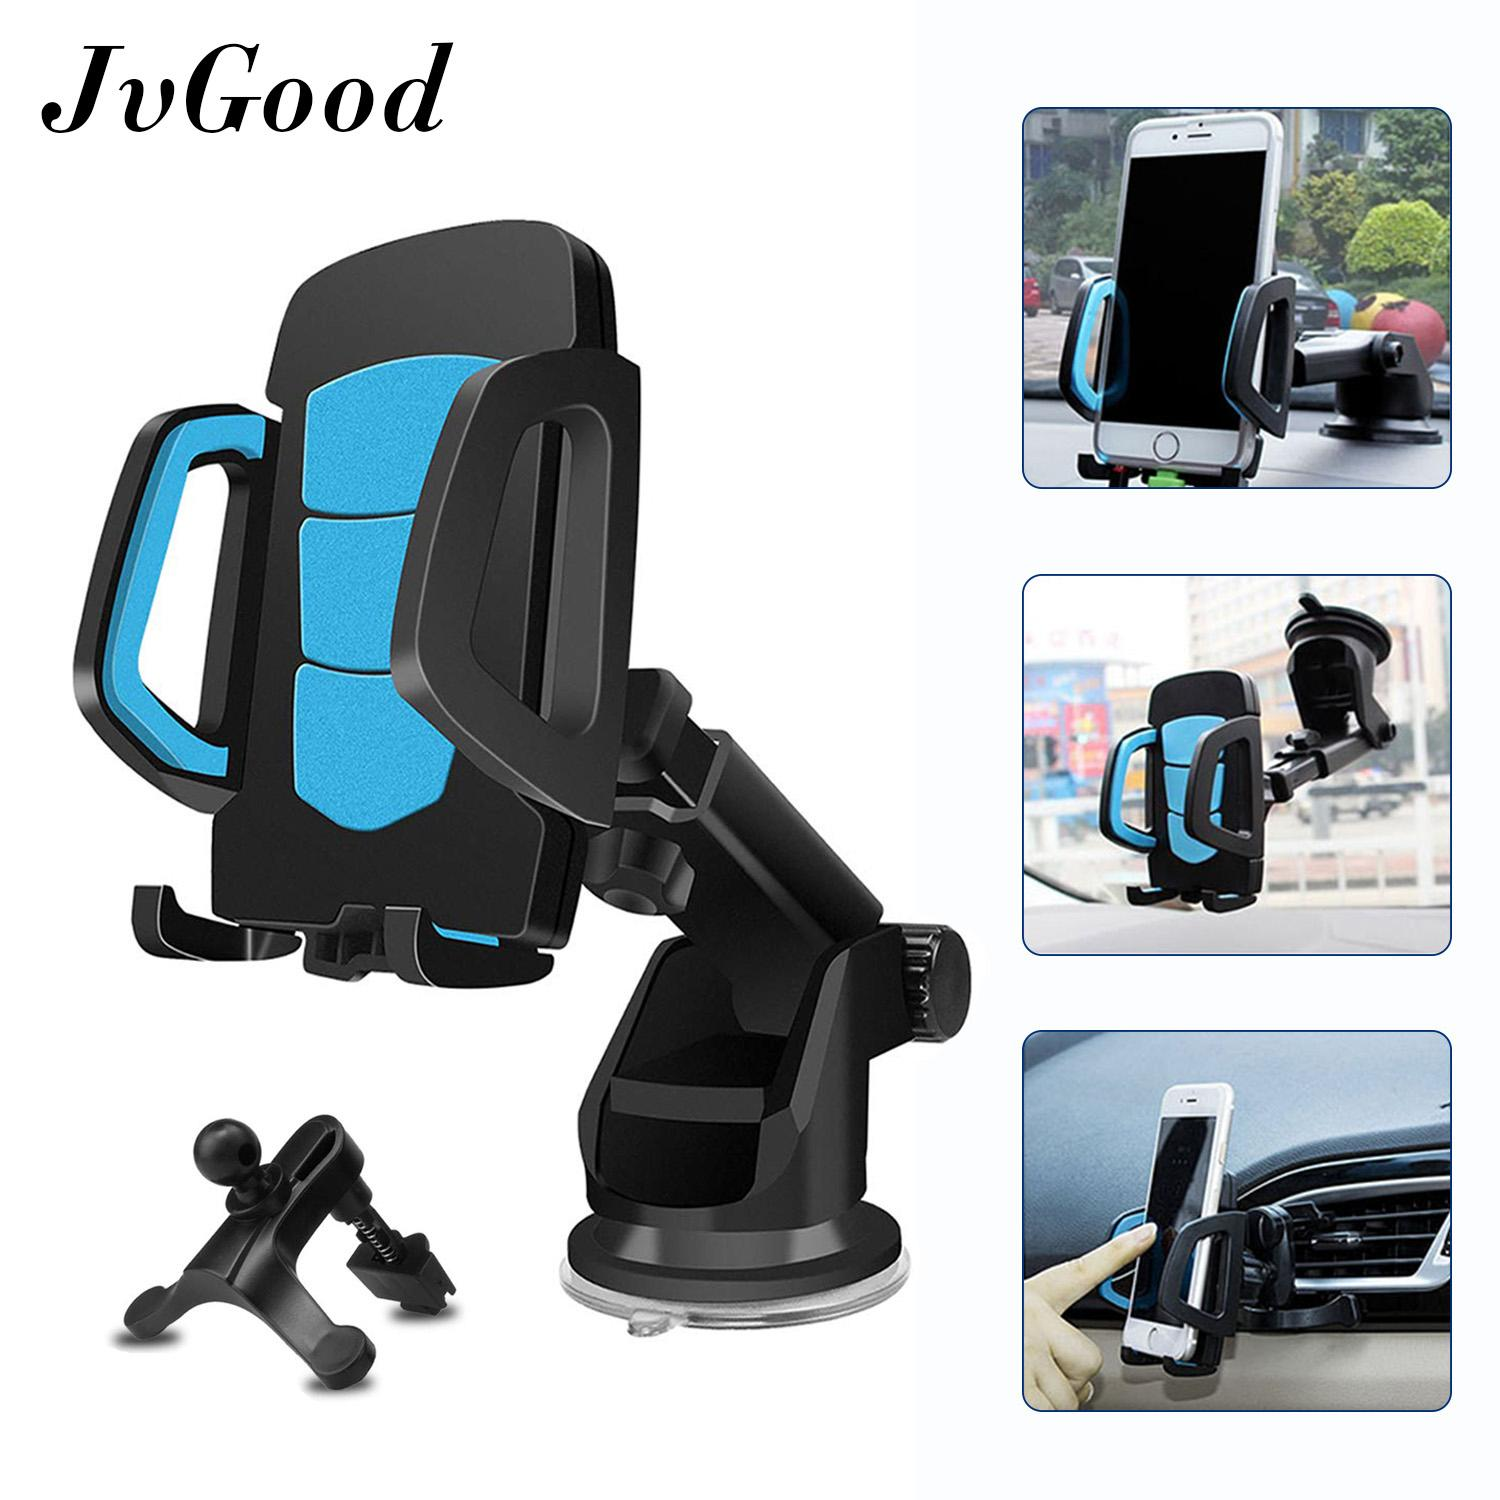 Jvgood Car Mount Holder,3 In 1 Universal Smartphones Car Air Vent, Gps Dashboard Or Windshield Touch Car Mount Holder For I Phone S Amsung And Gps Navigations By Jvgood.